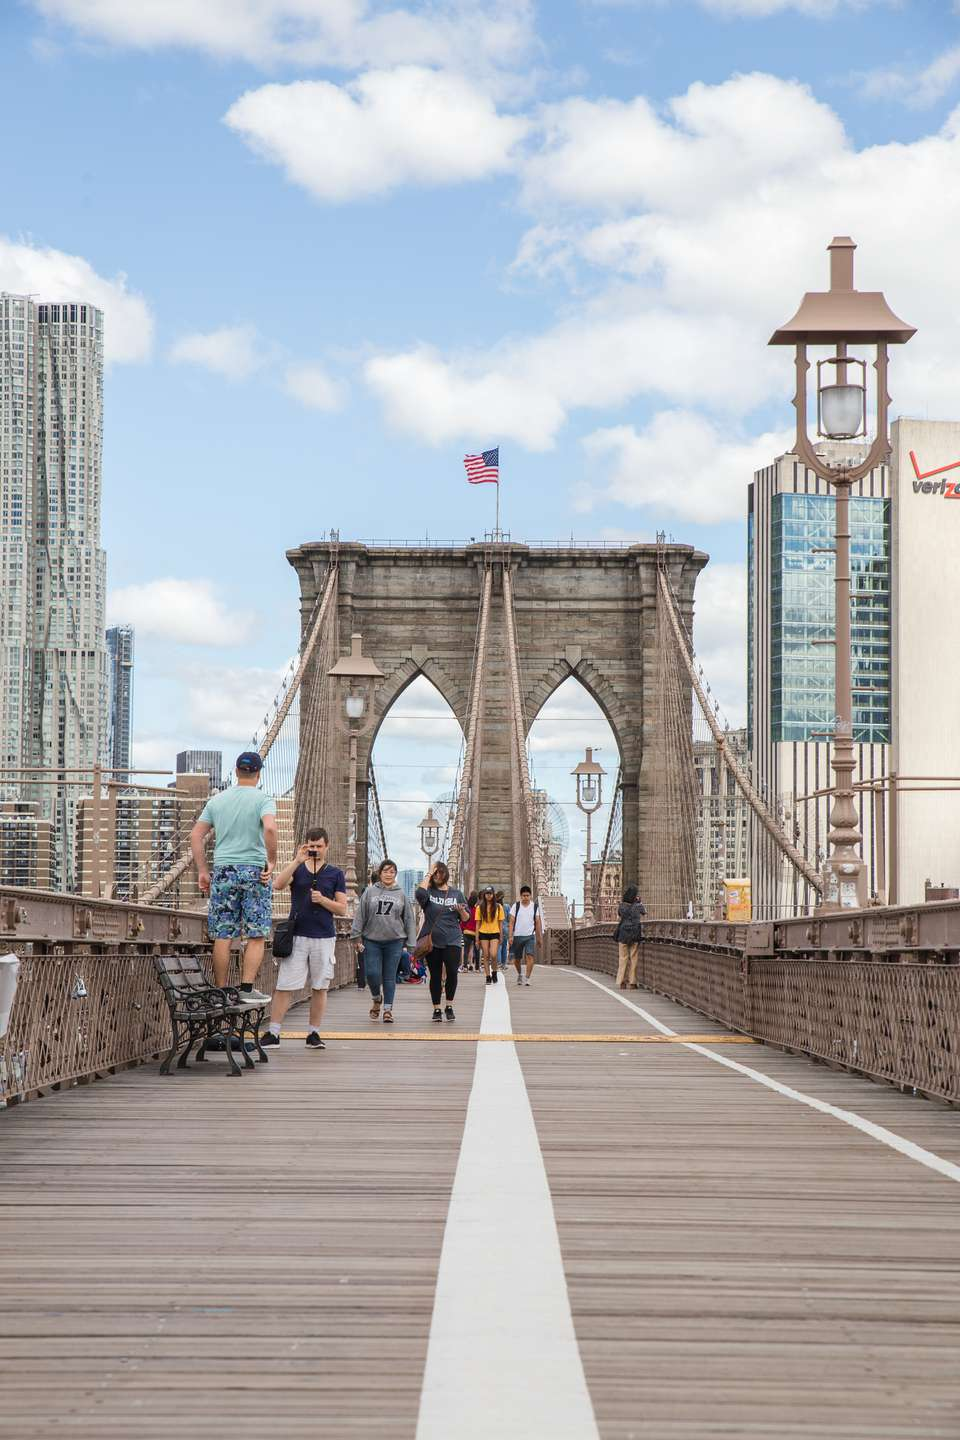 People walking along the Brooklyn Bridge